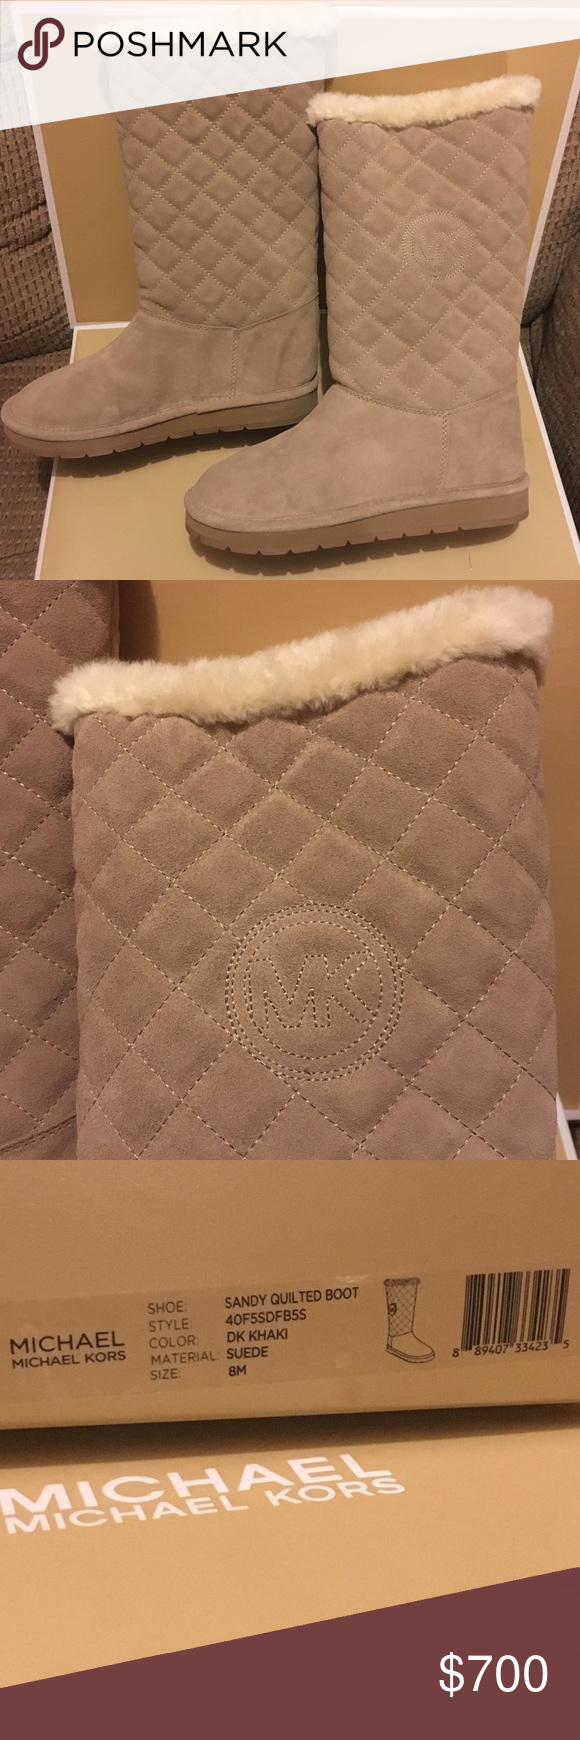 Michael Kors SANDY QUILTED Boots New in Box. Very warm & cozy. Perfect for winter.  No trade, NO LOWBALL. Michael Kors Shoes Winter & Rain Boots